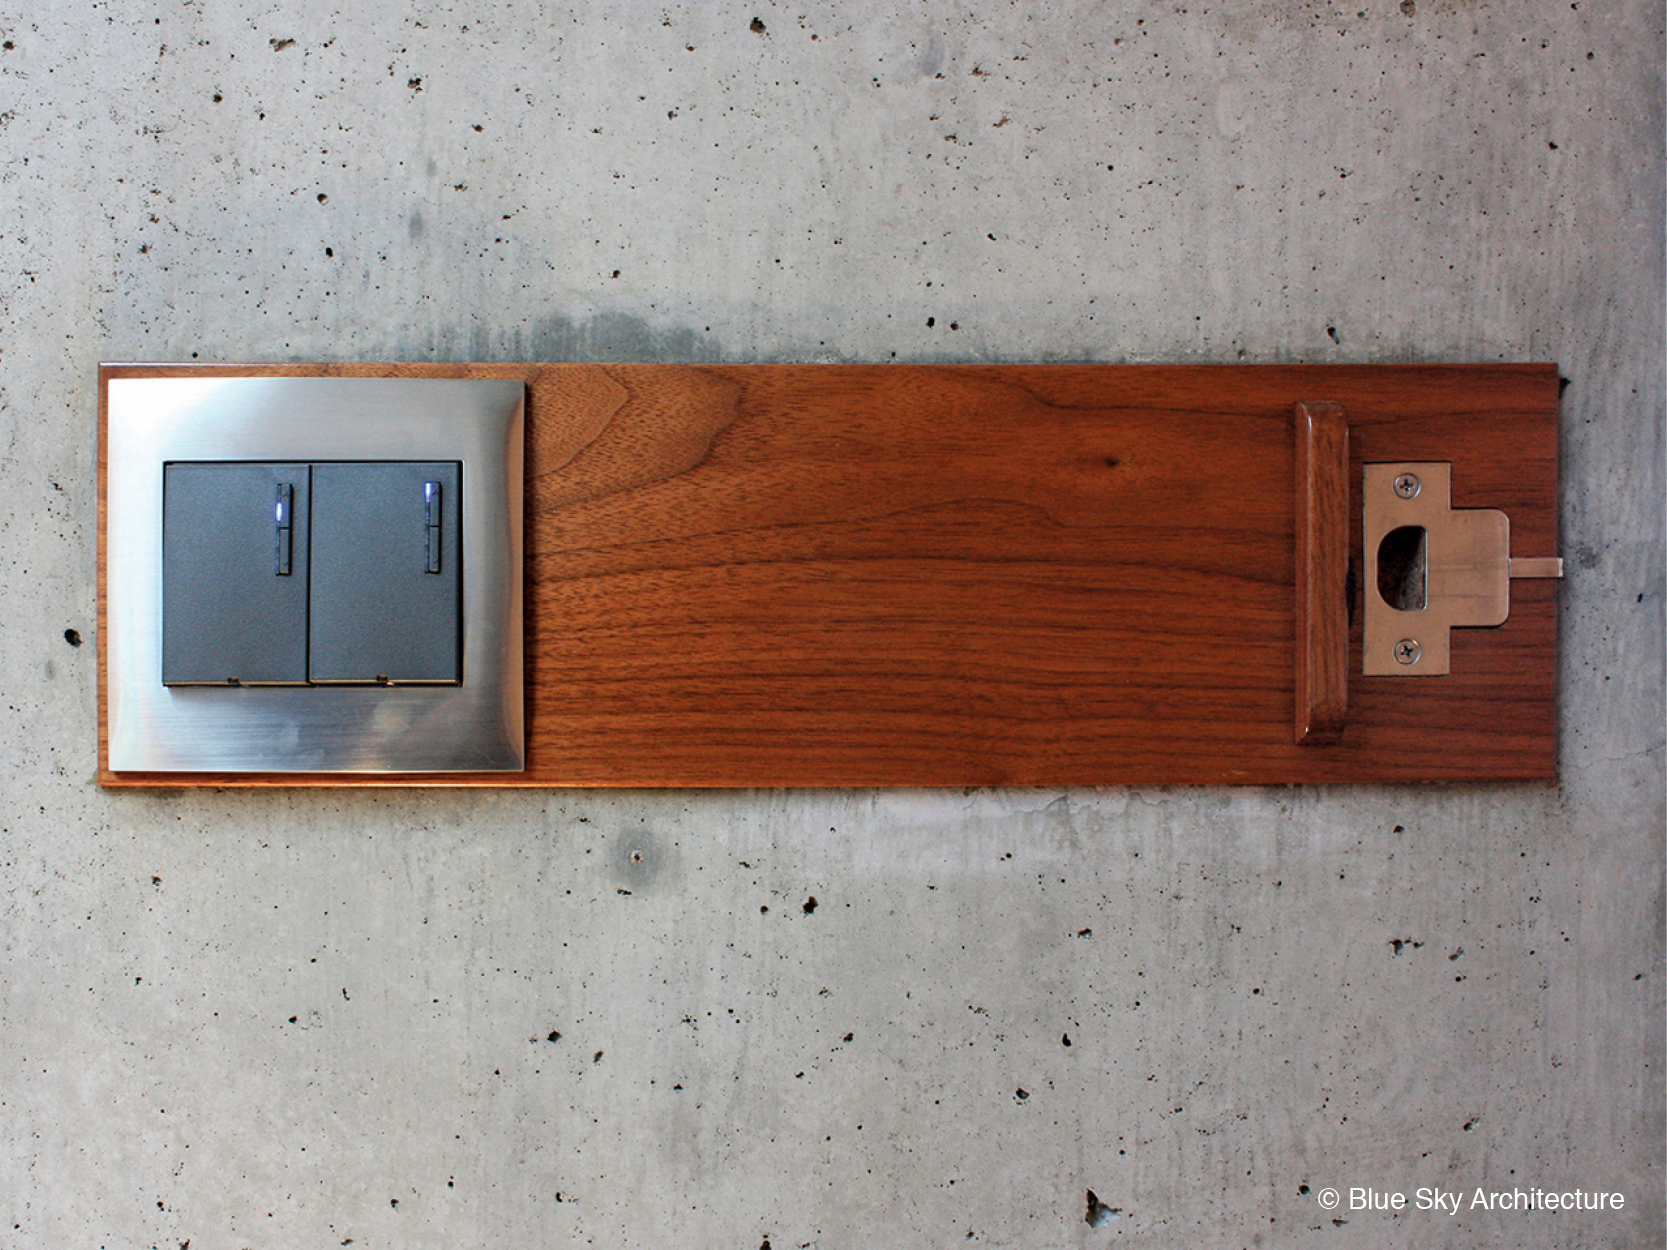 Wood detailing on door latch and light switch